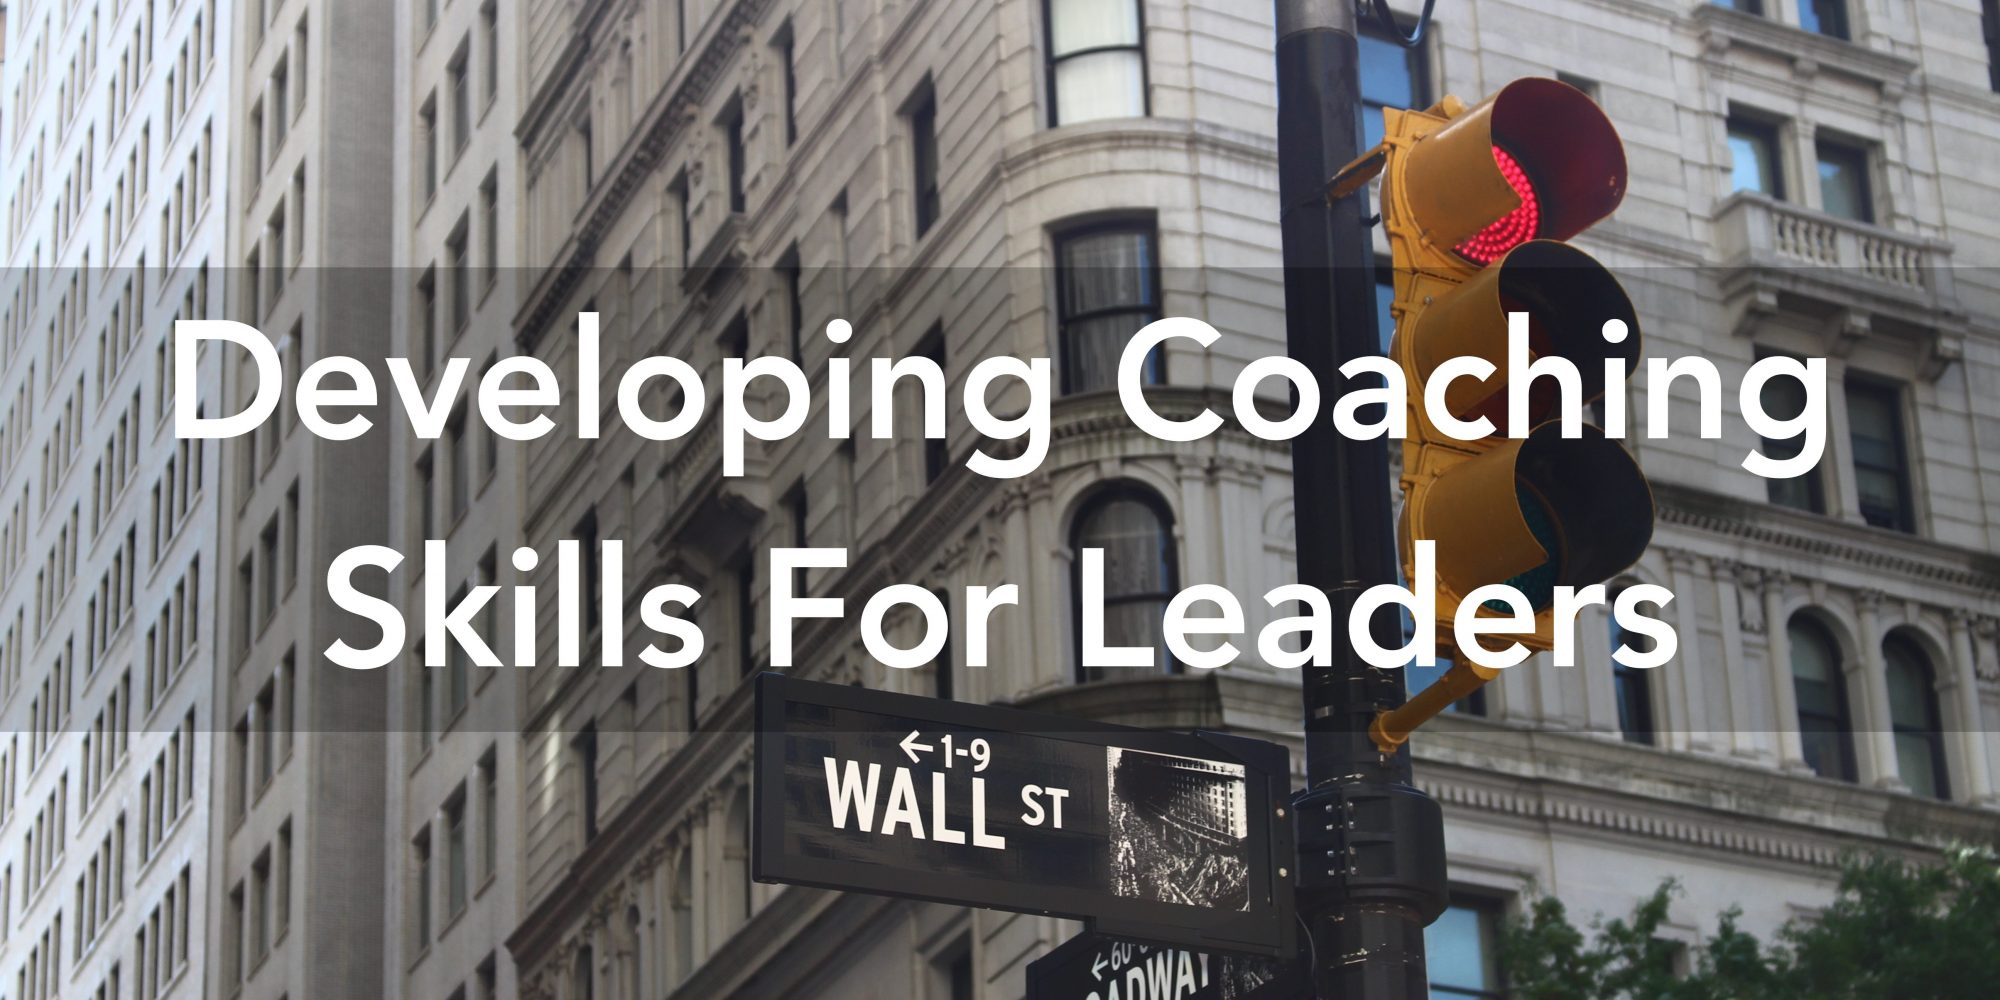 Developing Coaching Skills for Leaders